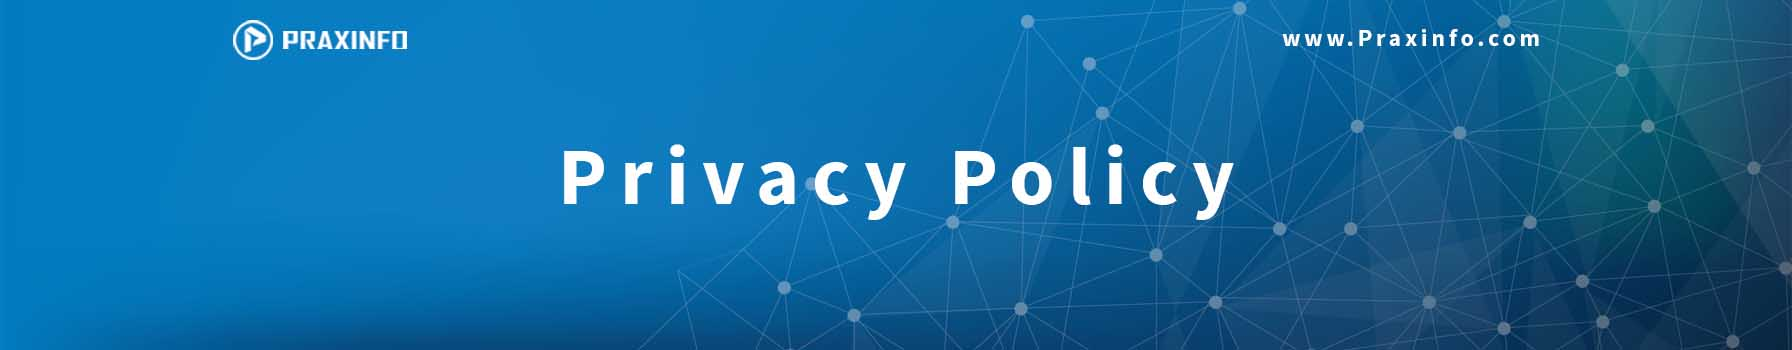 privacy-policy.jpg